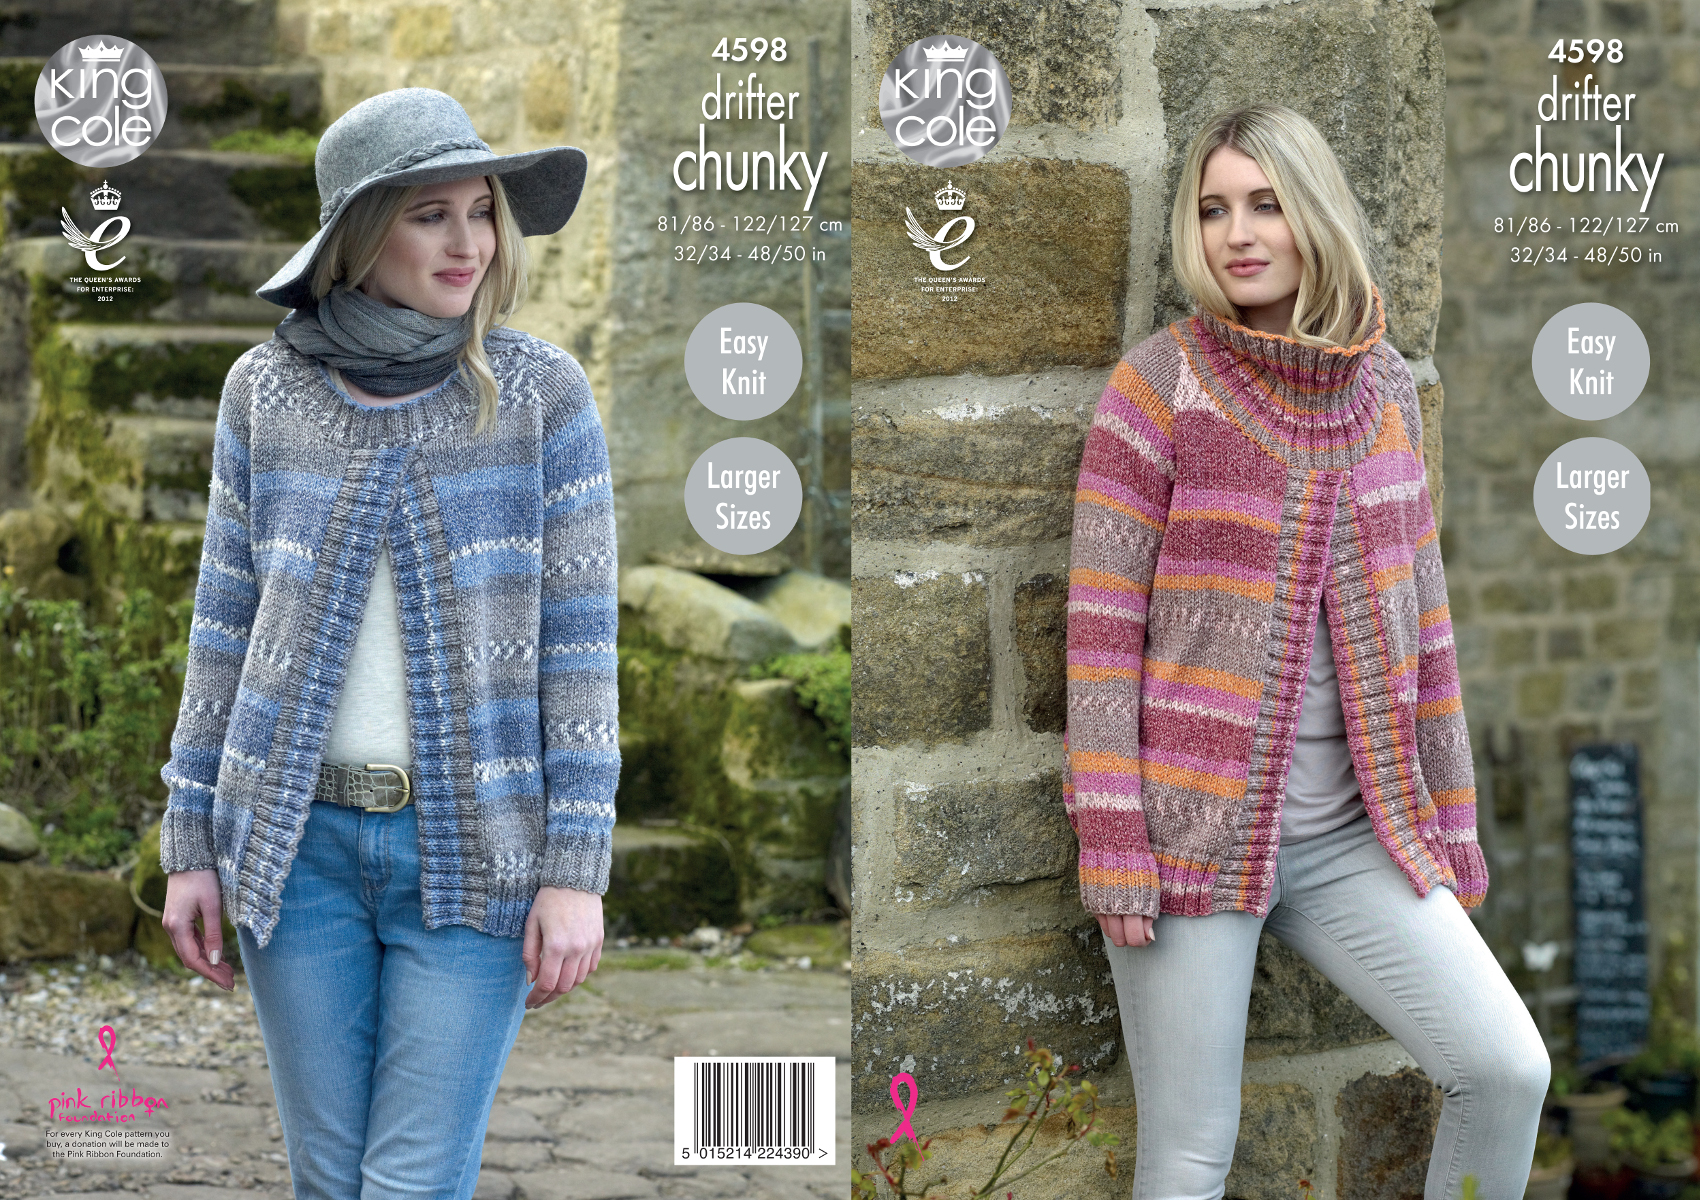 Download Knitting Patterns King Cole : Easy Knitted Chunky Sweater - Cardigan With Buttons